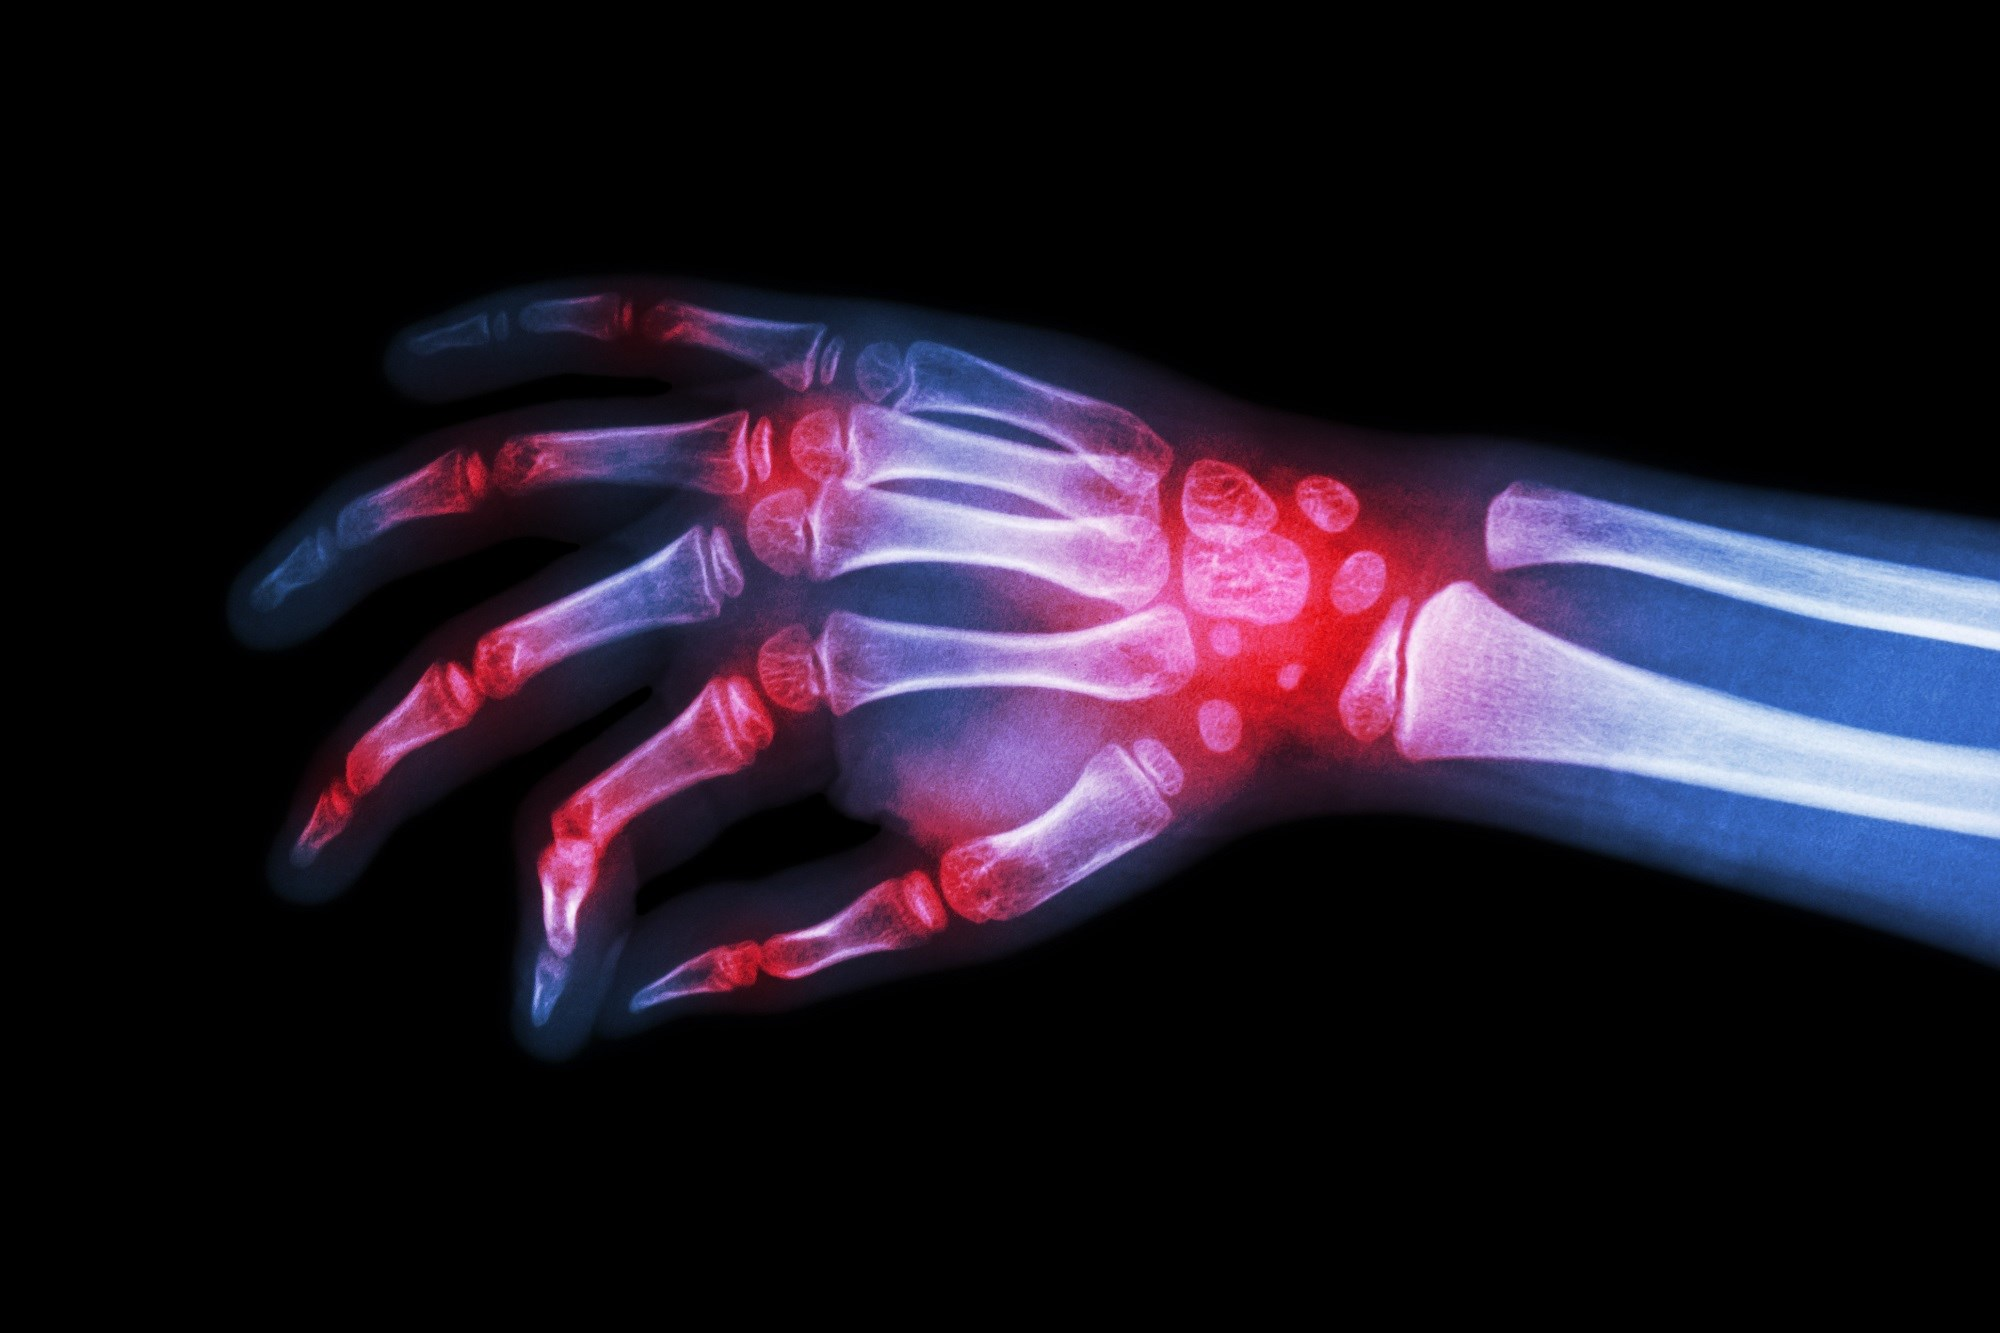 Serum sRAGE Correlated With Disease Activity in Rheumatoid Arthritis